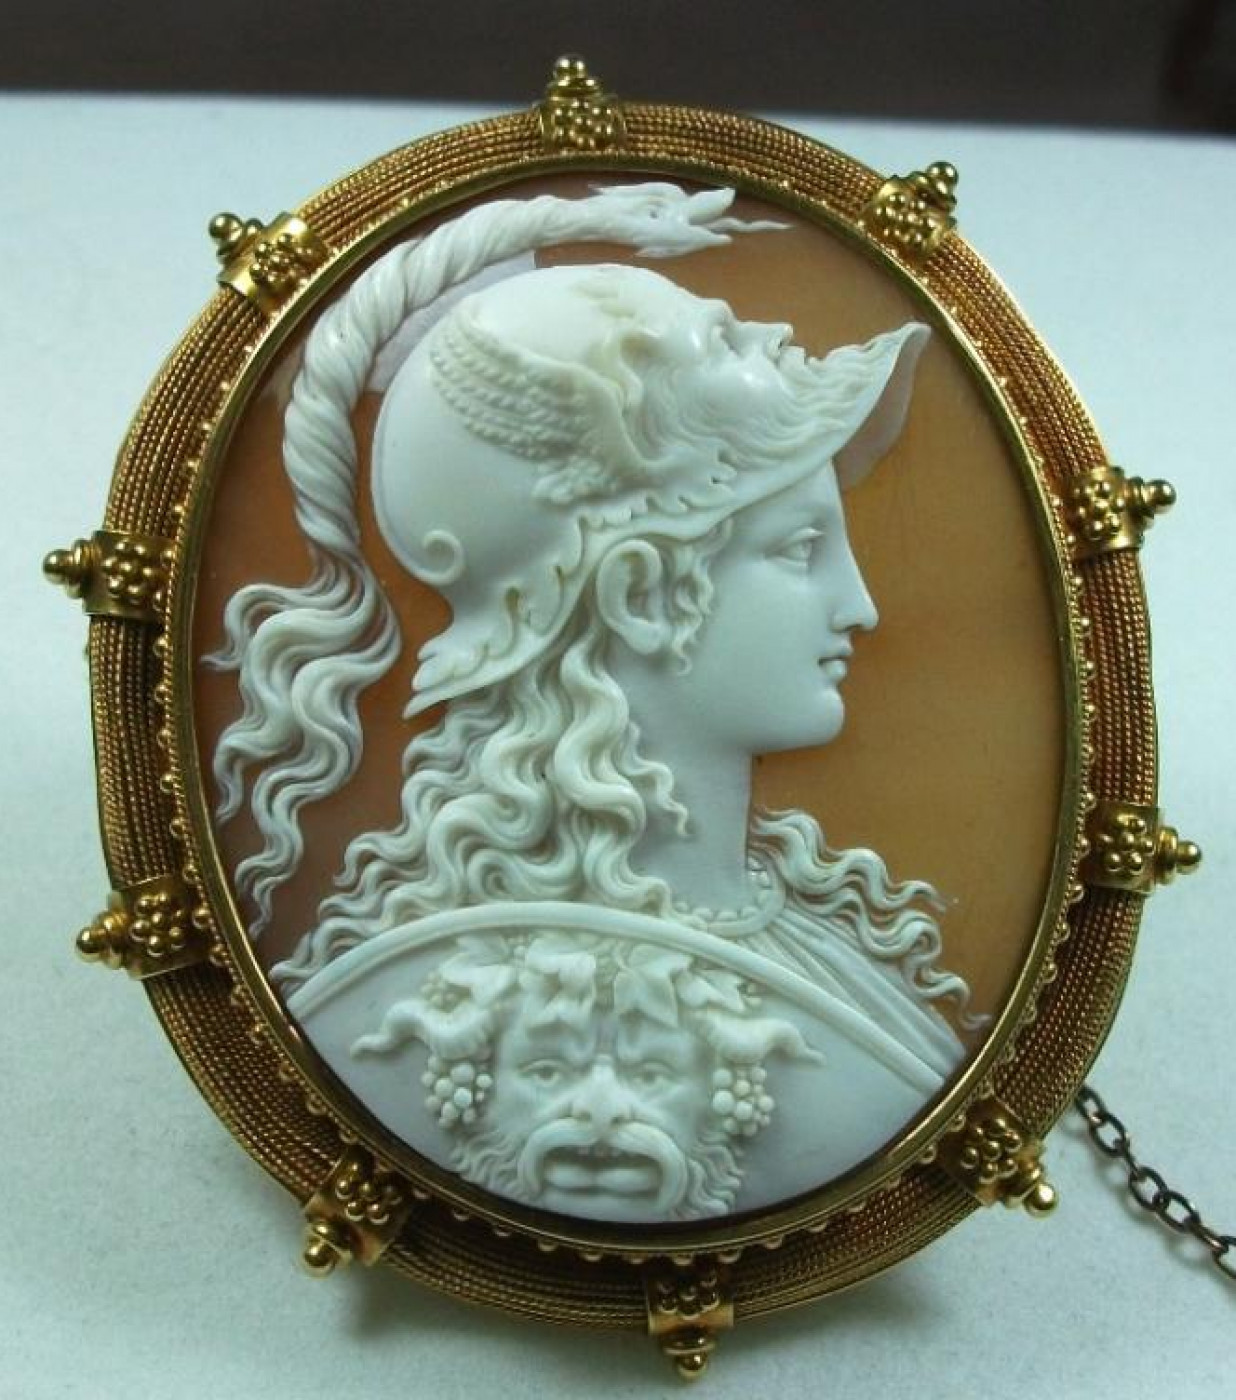 Exceptional Cameo of Athena Signed Filippo Tignani